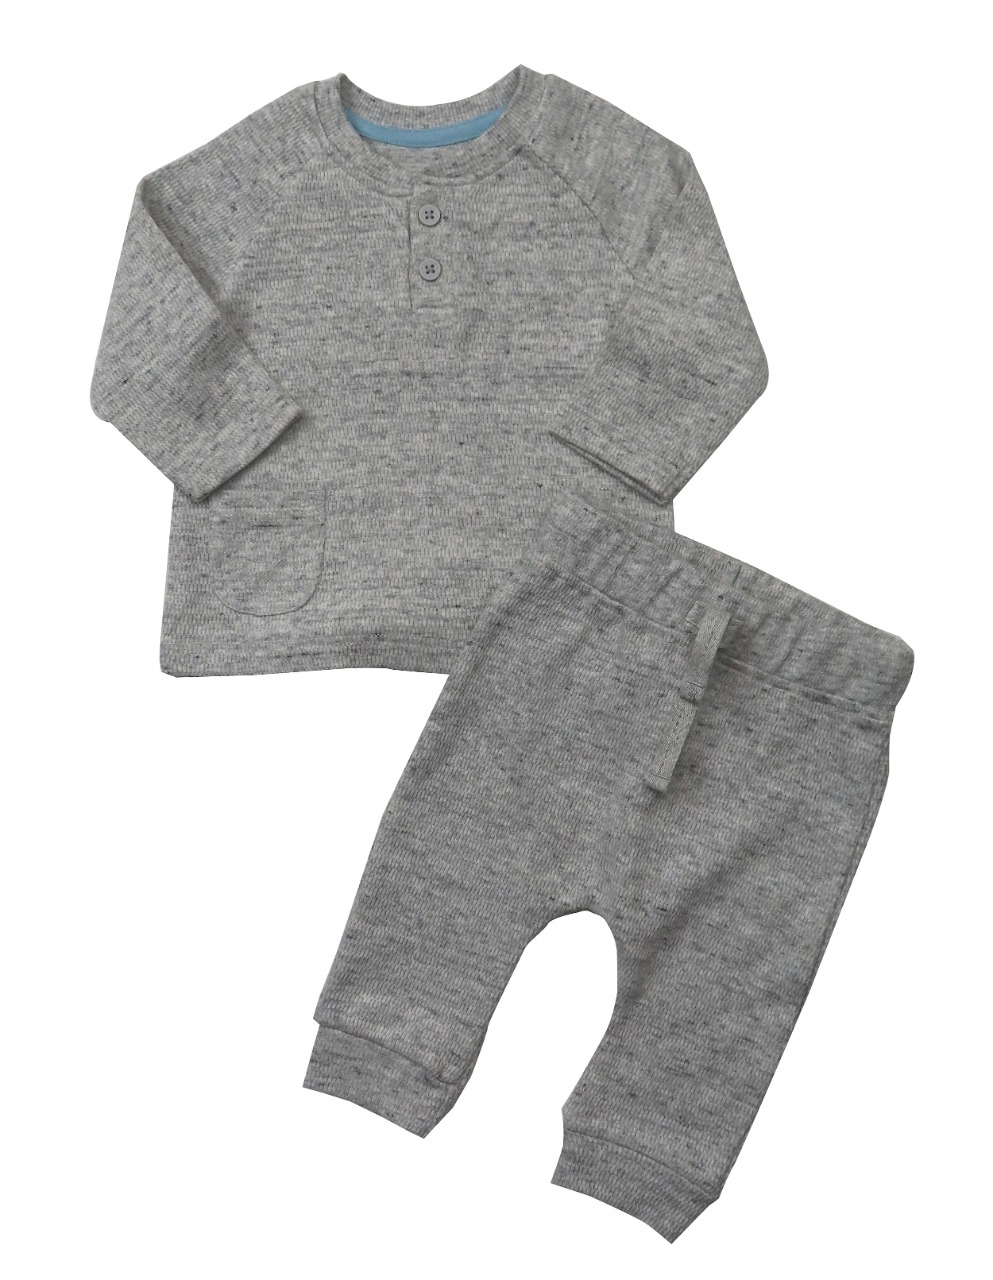 Baby Boys Waffle Knit 2 Pc Set (Henley Top n Pant)